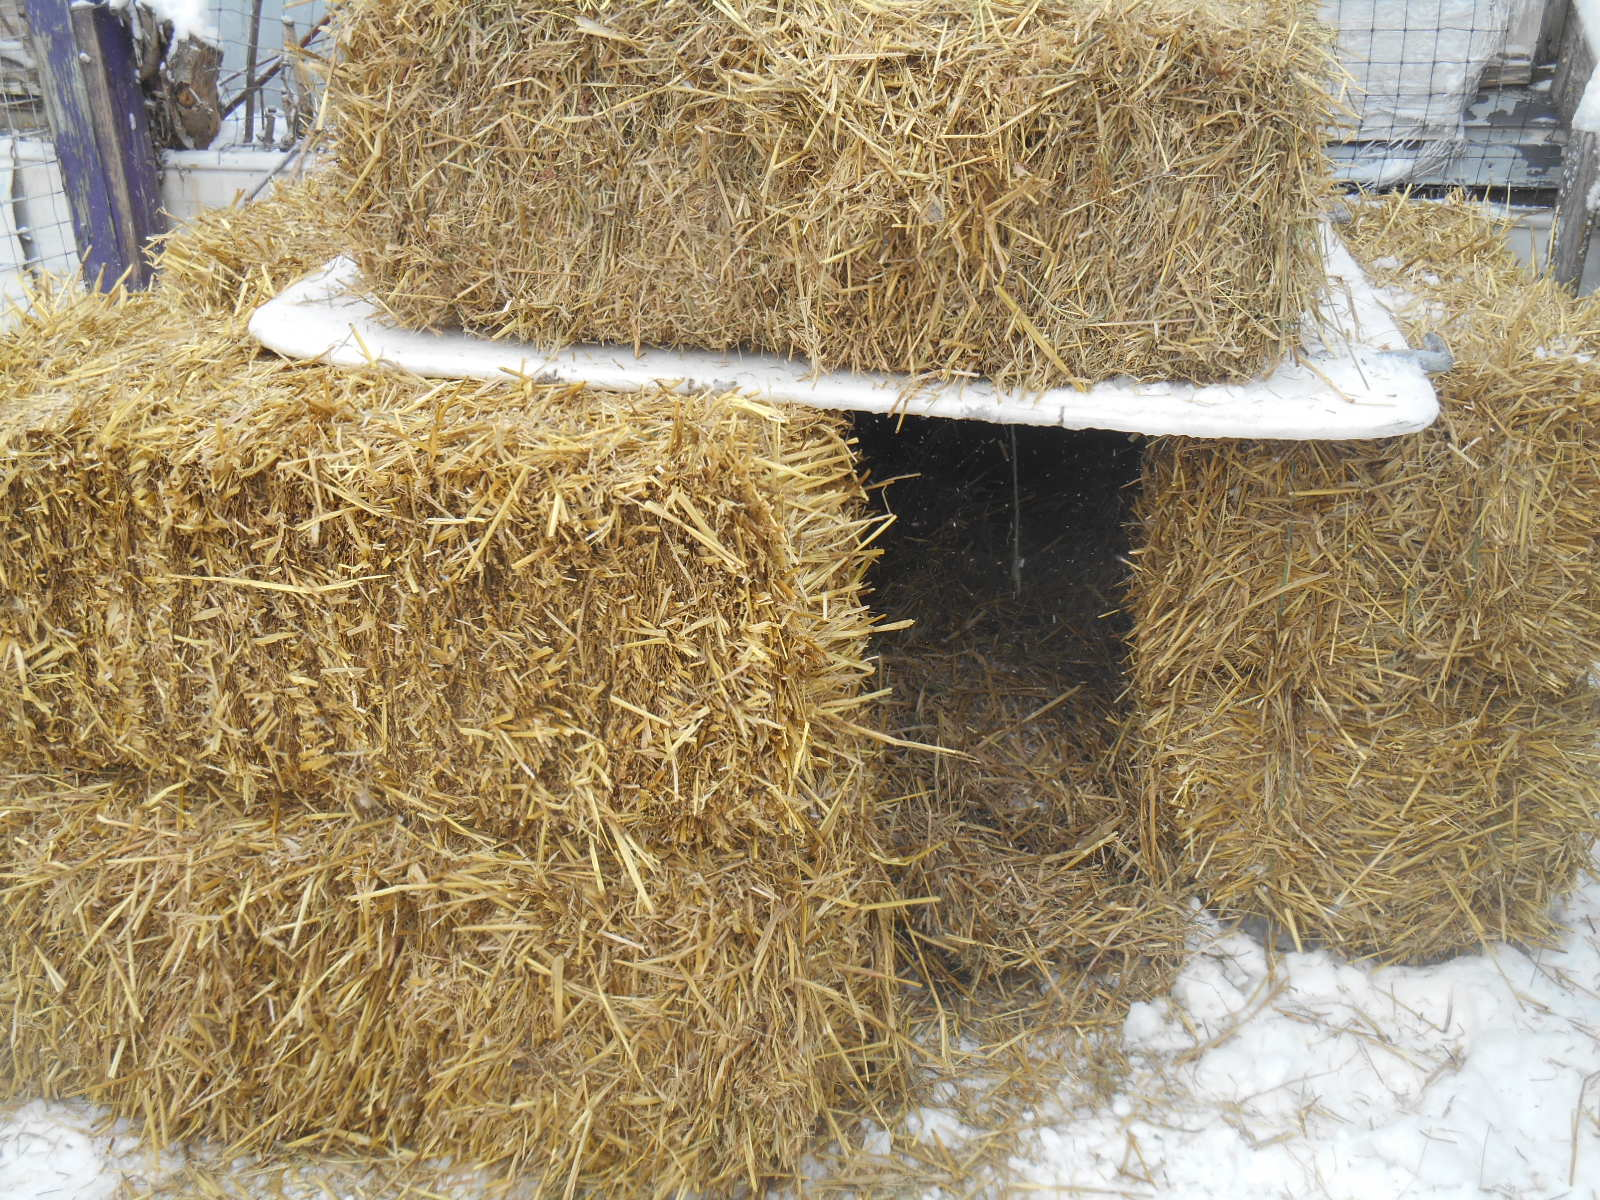 Dang Geese Straw Bale Housing Just Another Day On The Farm